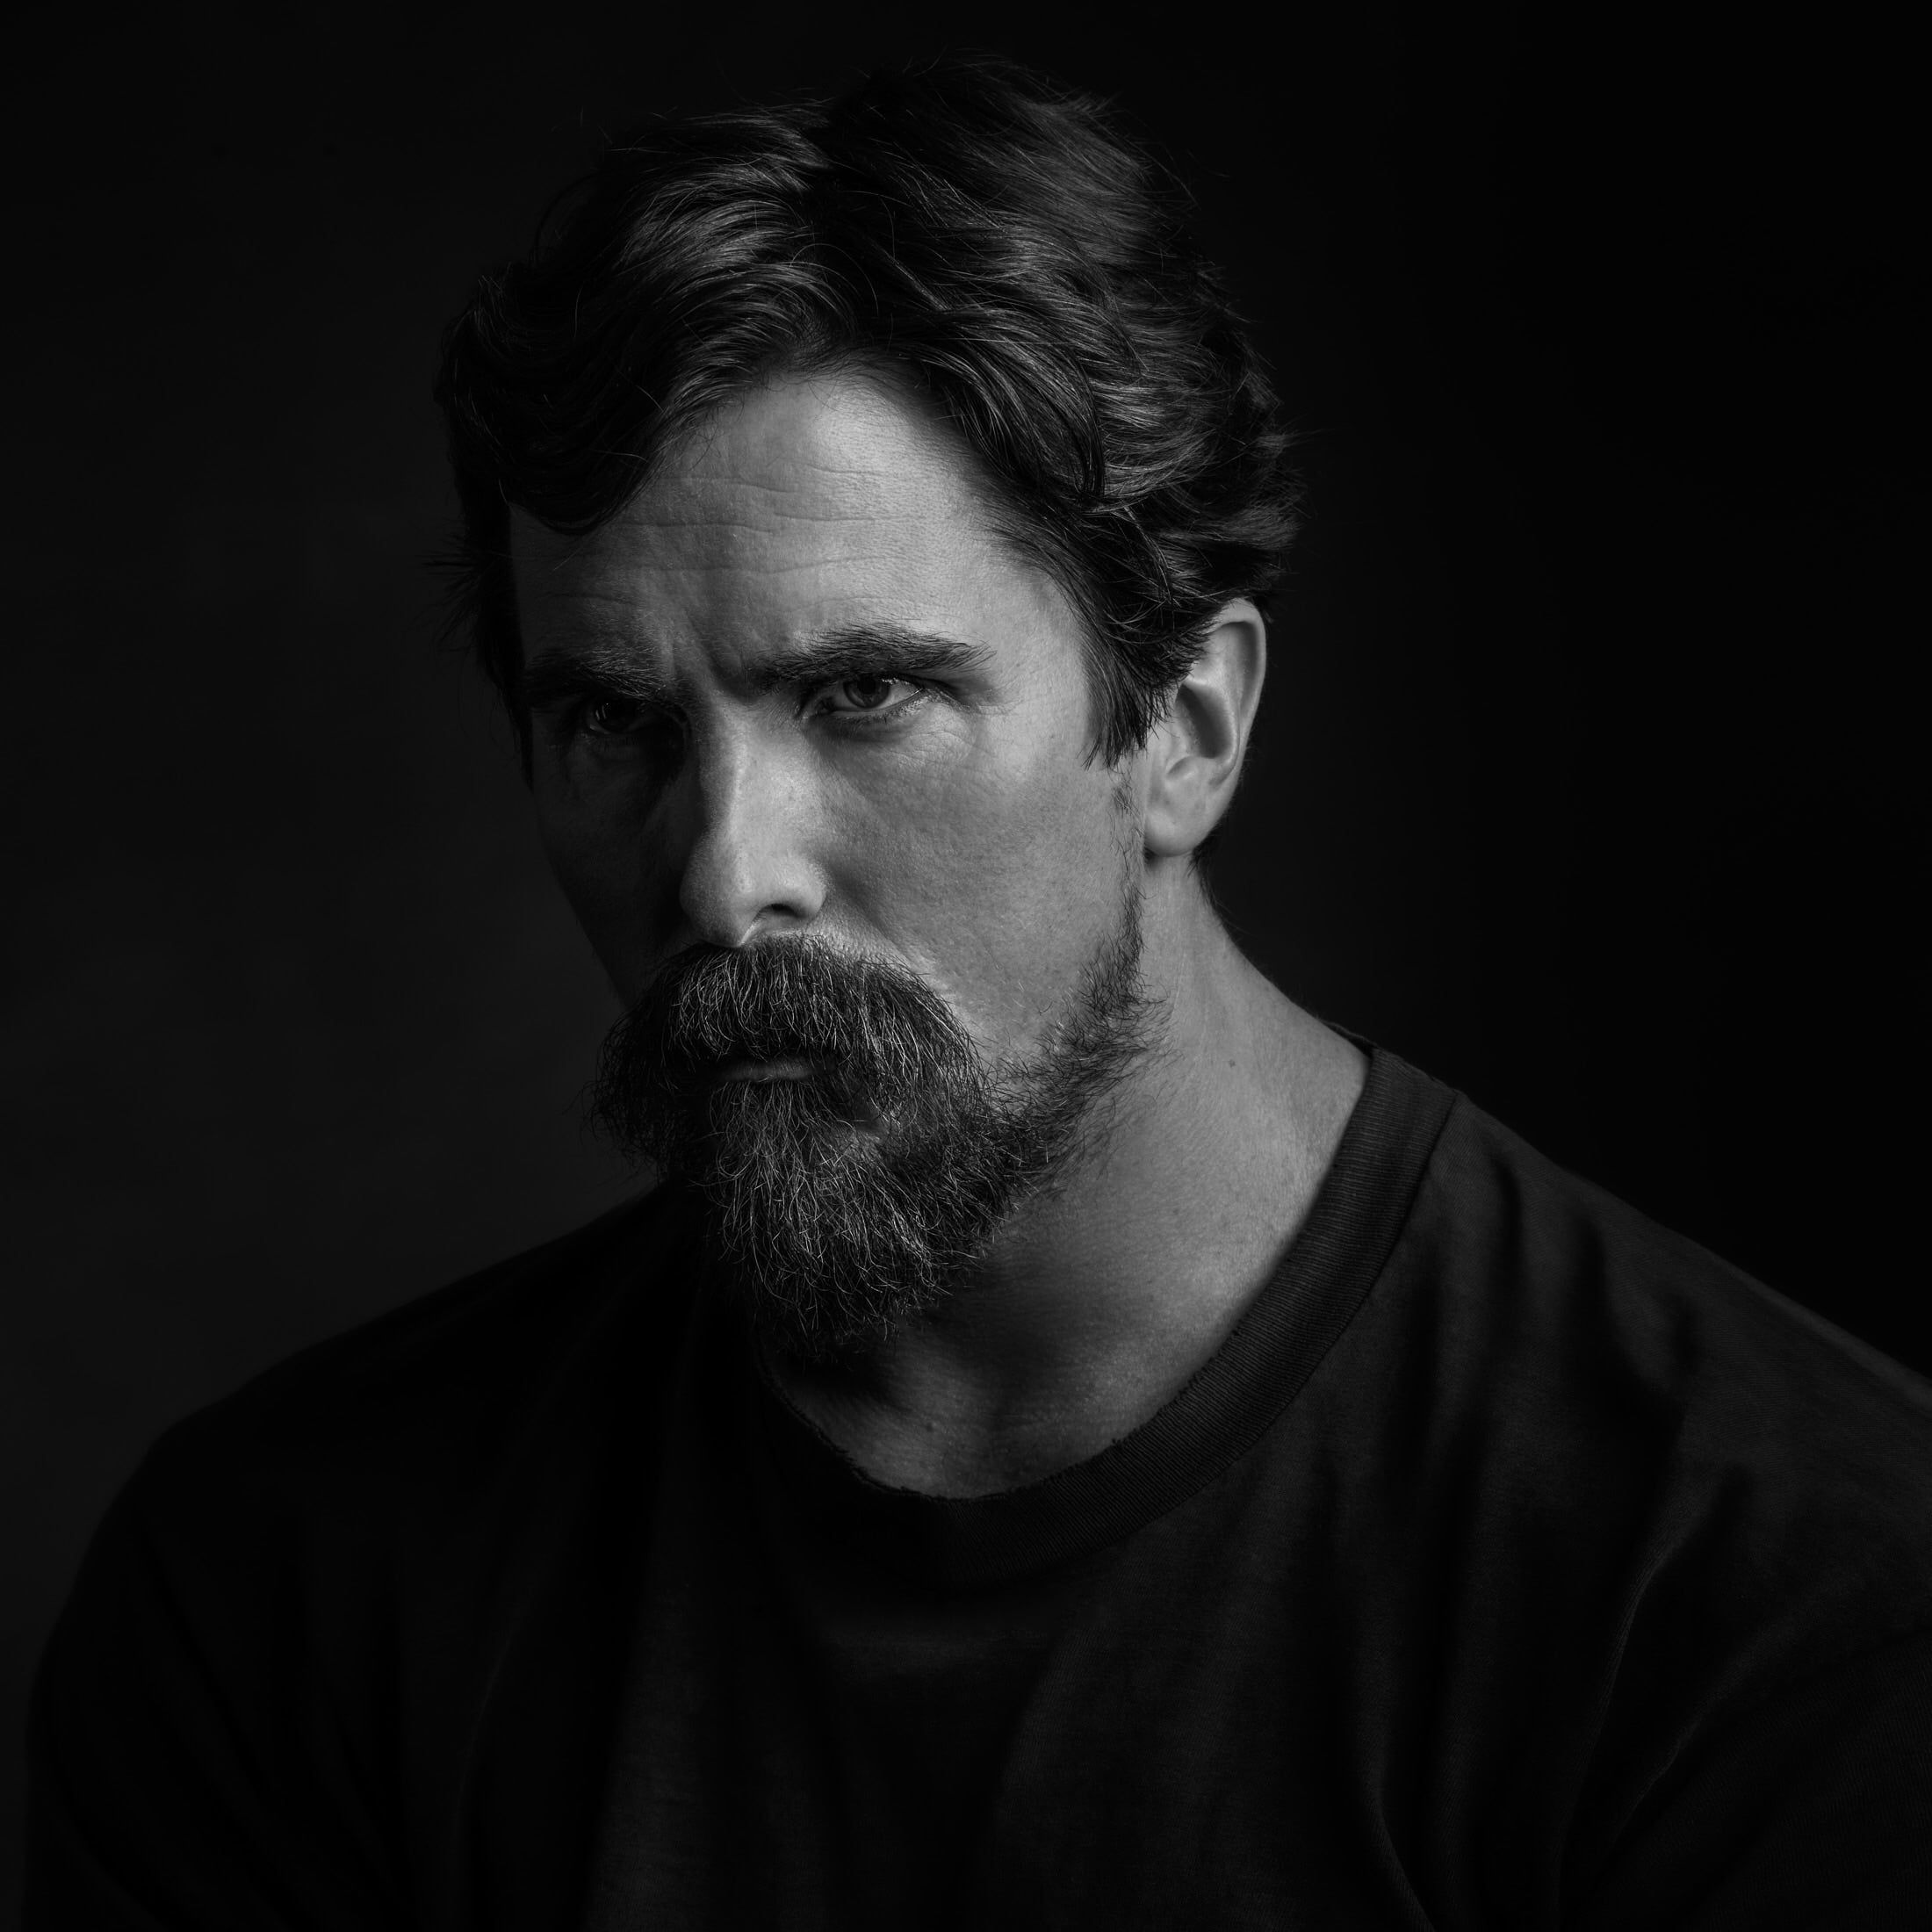 Crew Neck Top Photo Portrait T Shirt Photographer Actor Black And White Beard Black Background Journal New Y In 2020 Christian Bale Portrait Celebrity Portraits